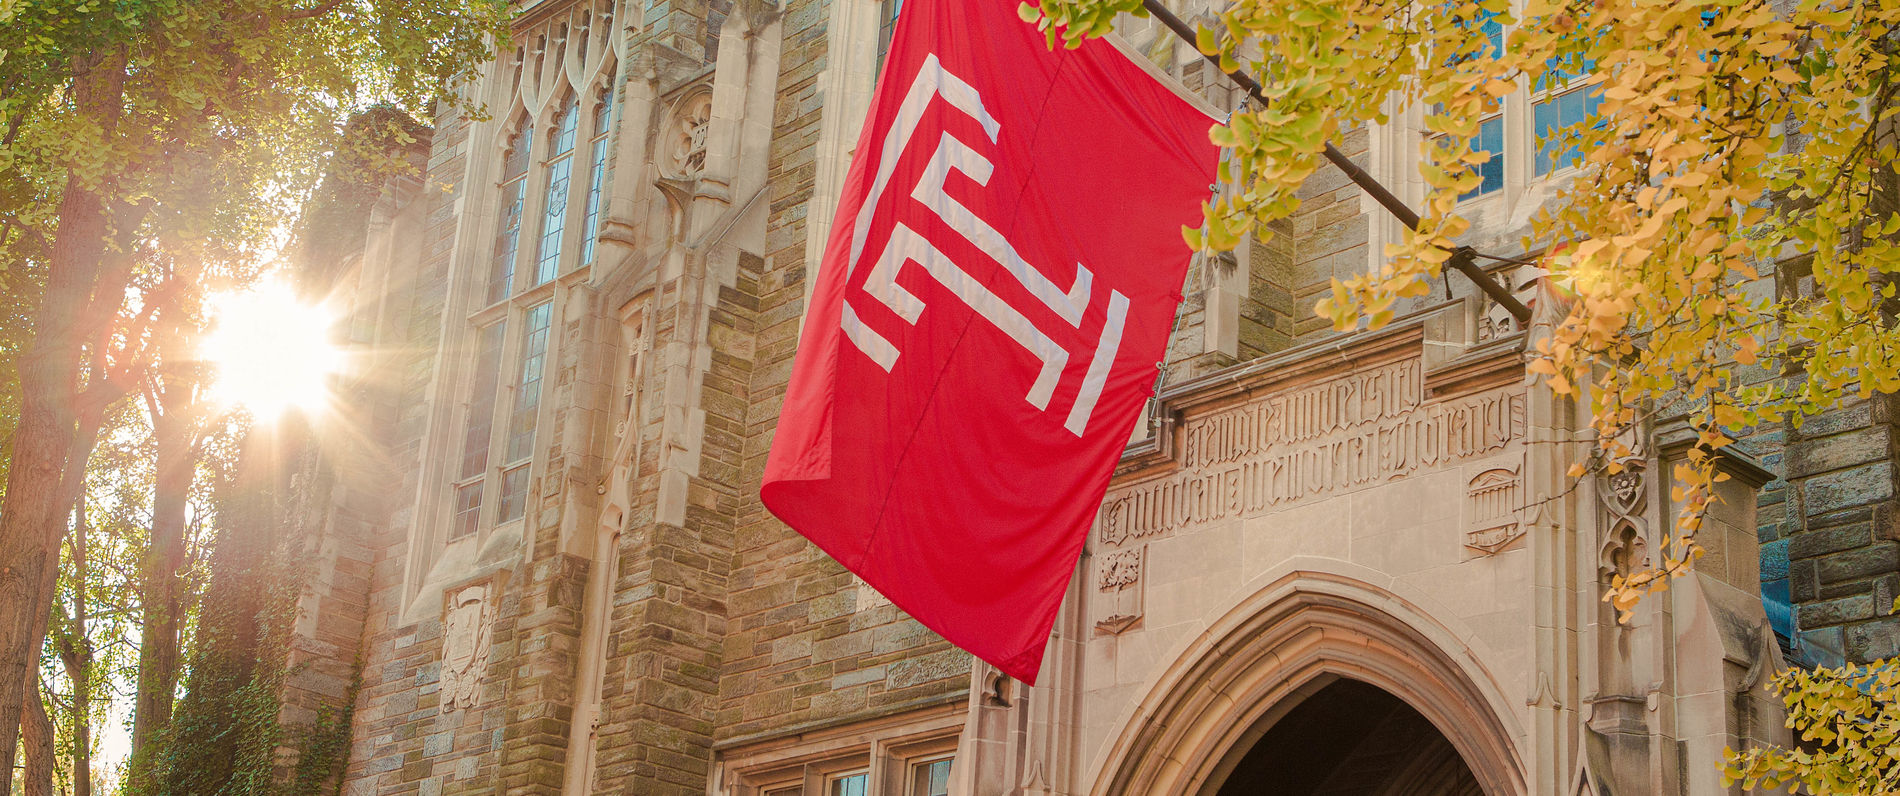 Temple flag hanging on a campus building